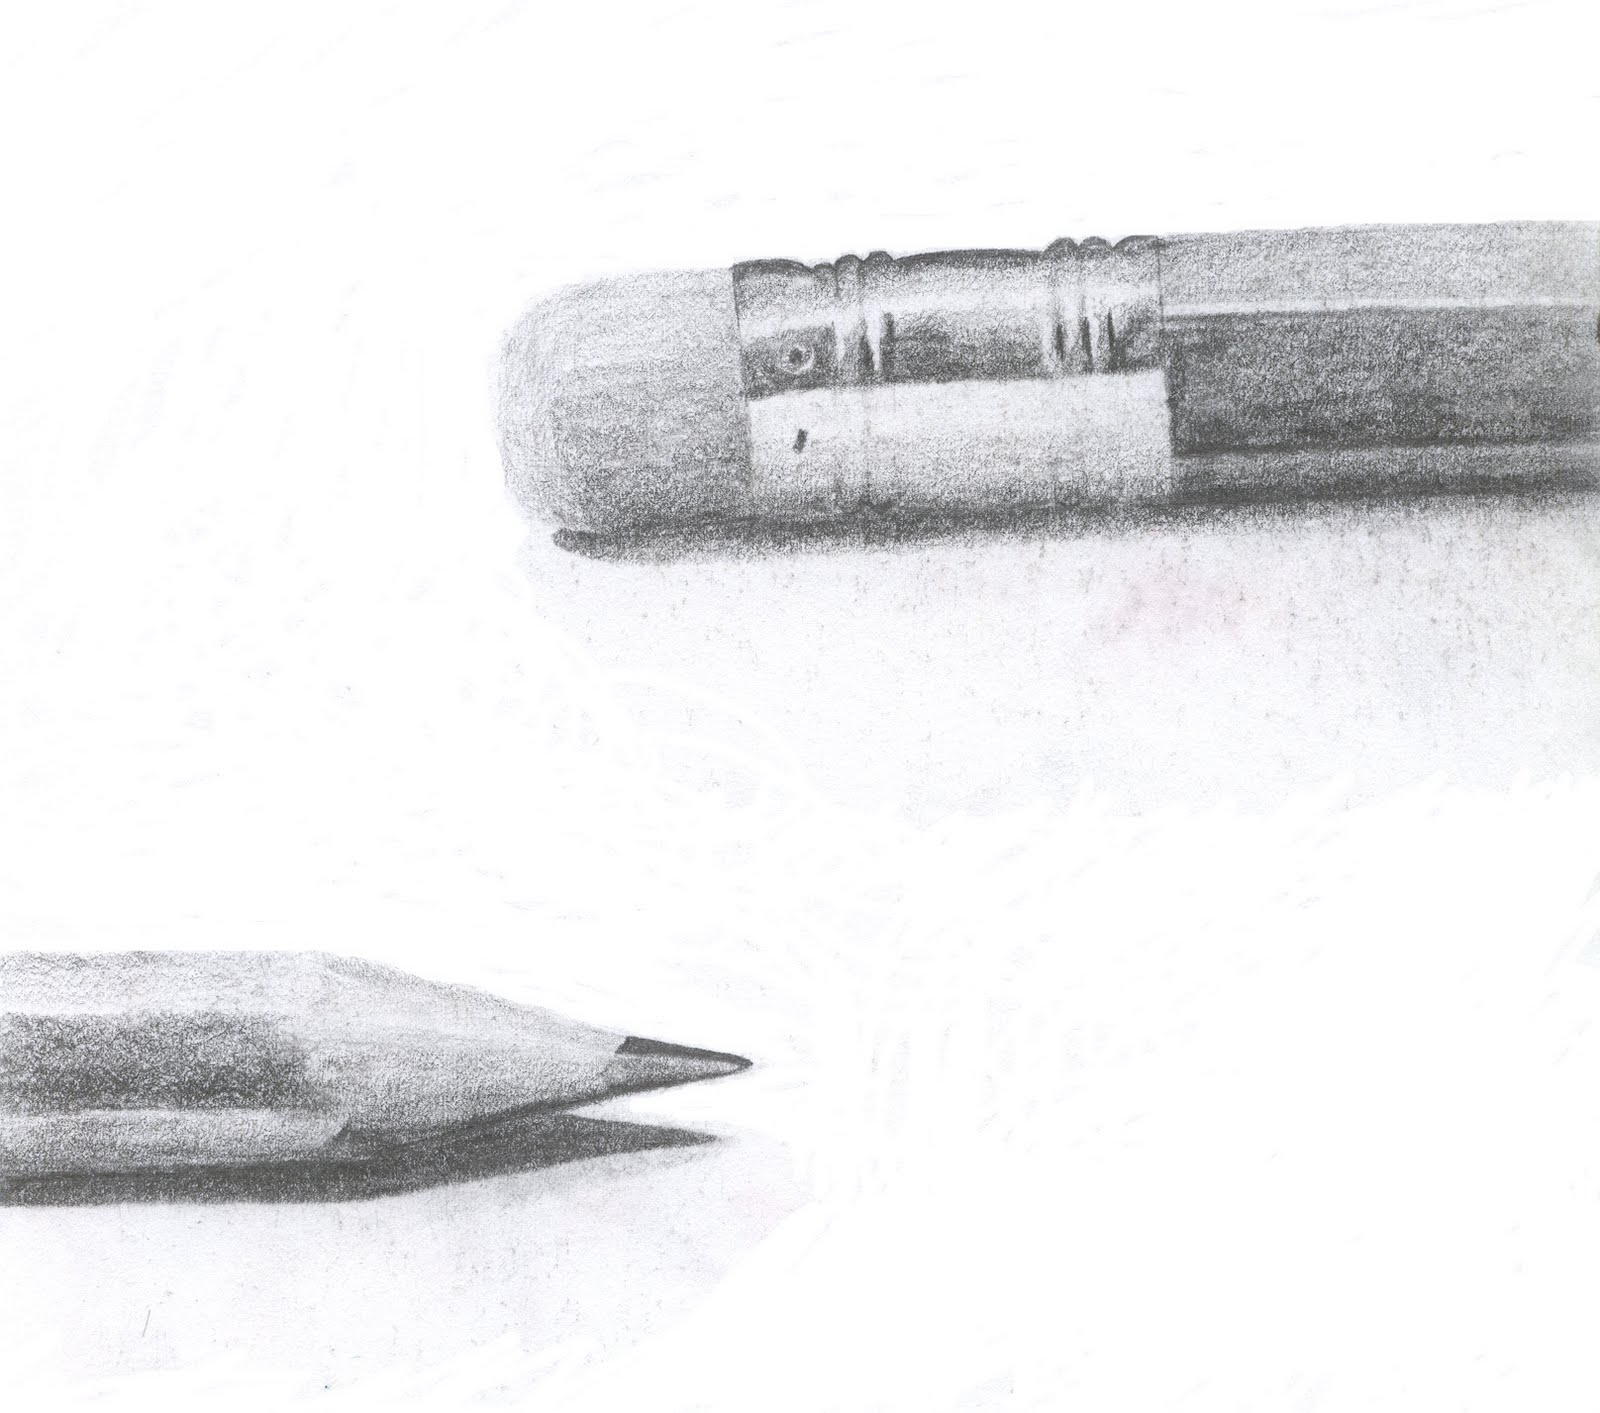 Number 2 pencil.